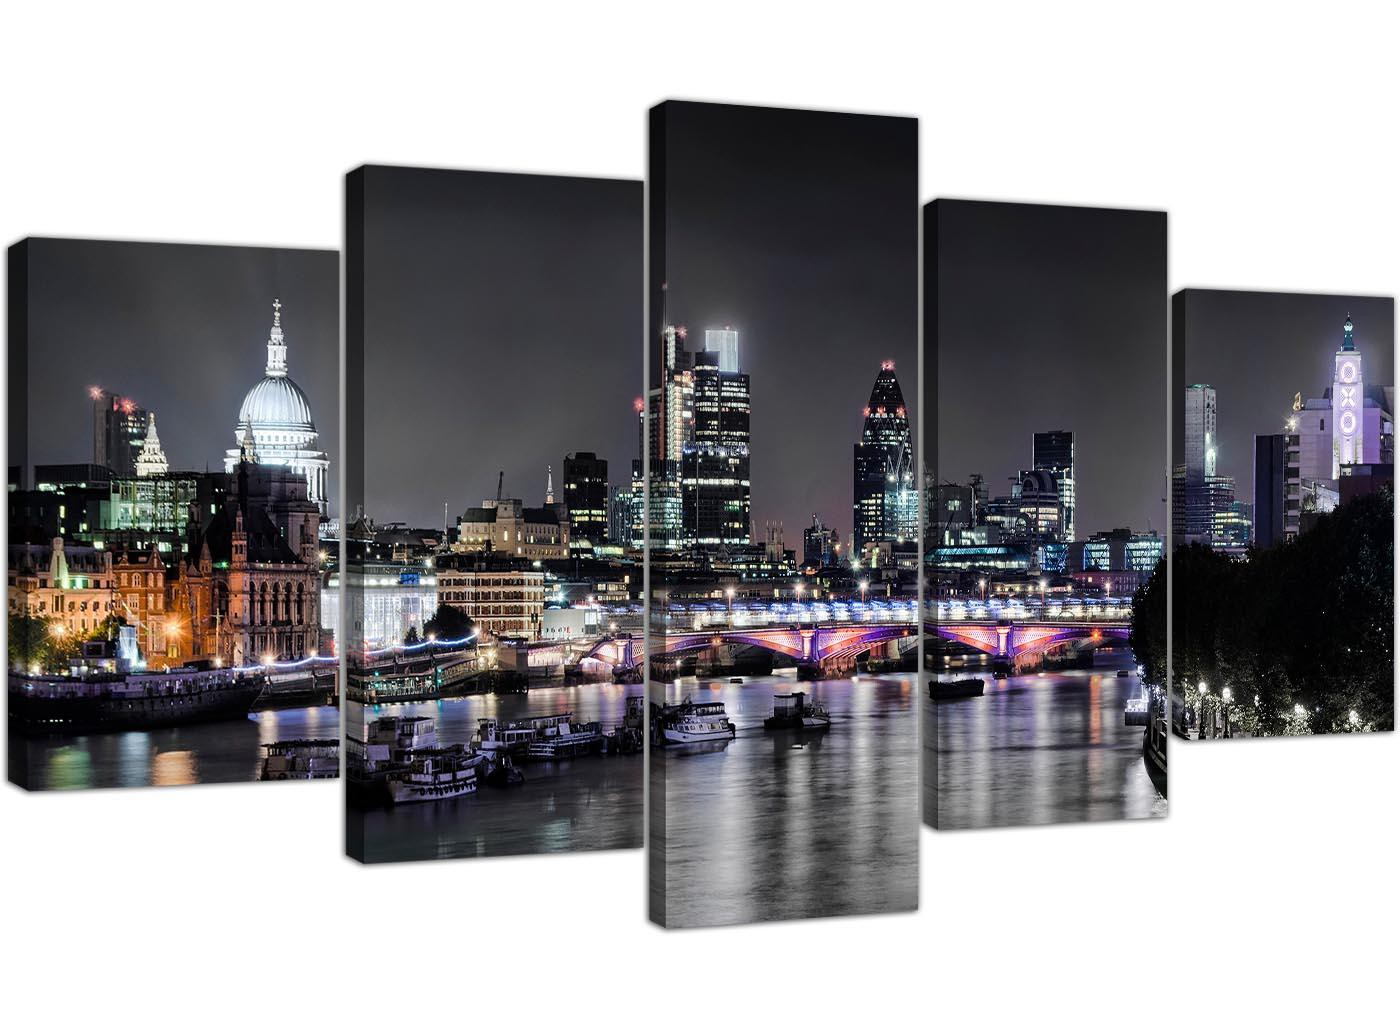 London Skyline At Night In Black White And Grey 5 Panel